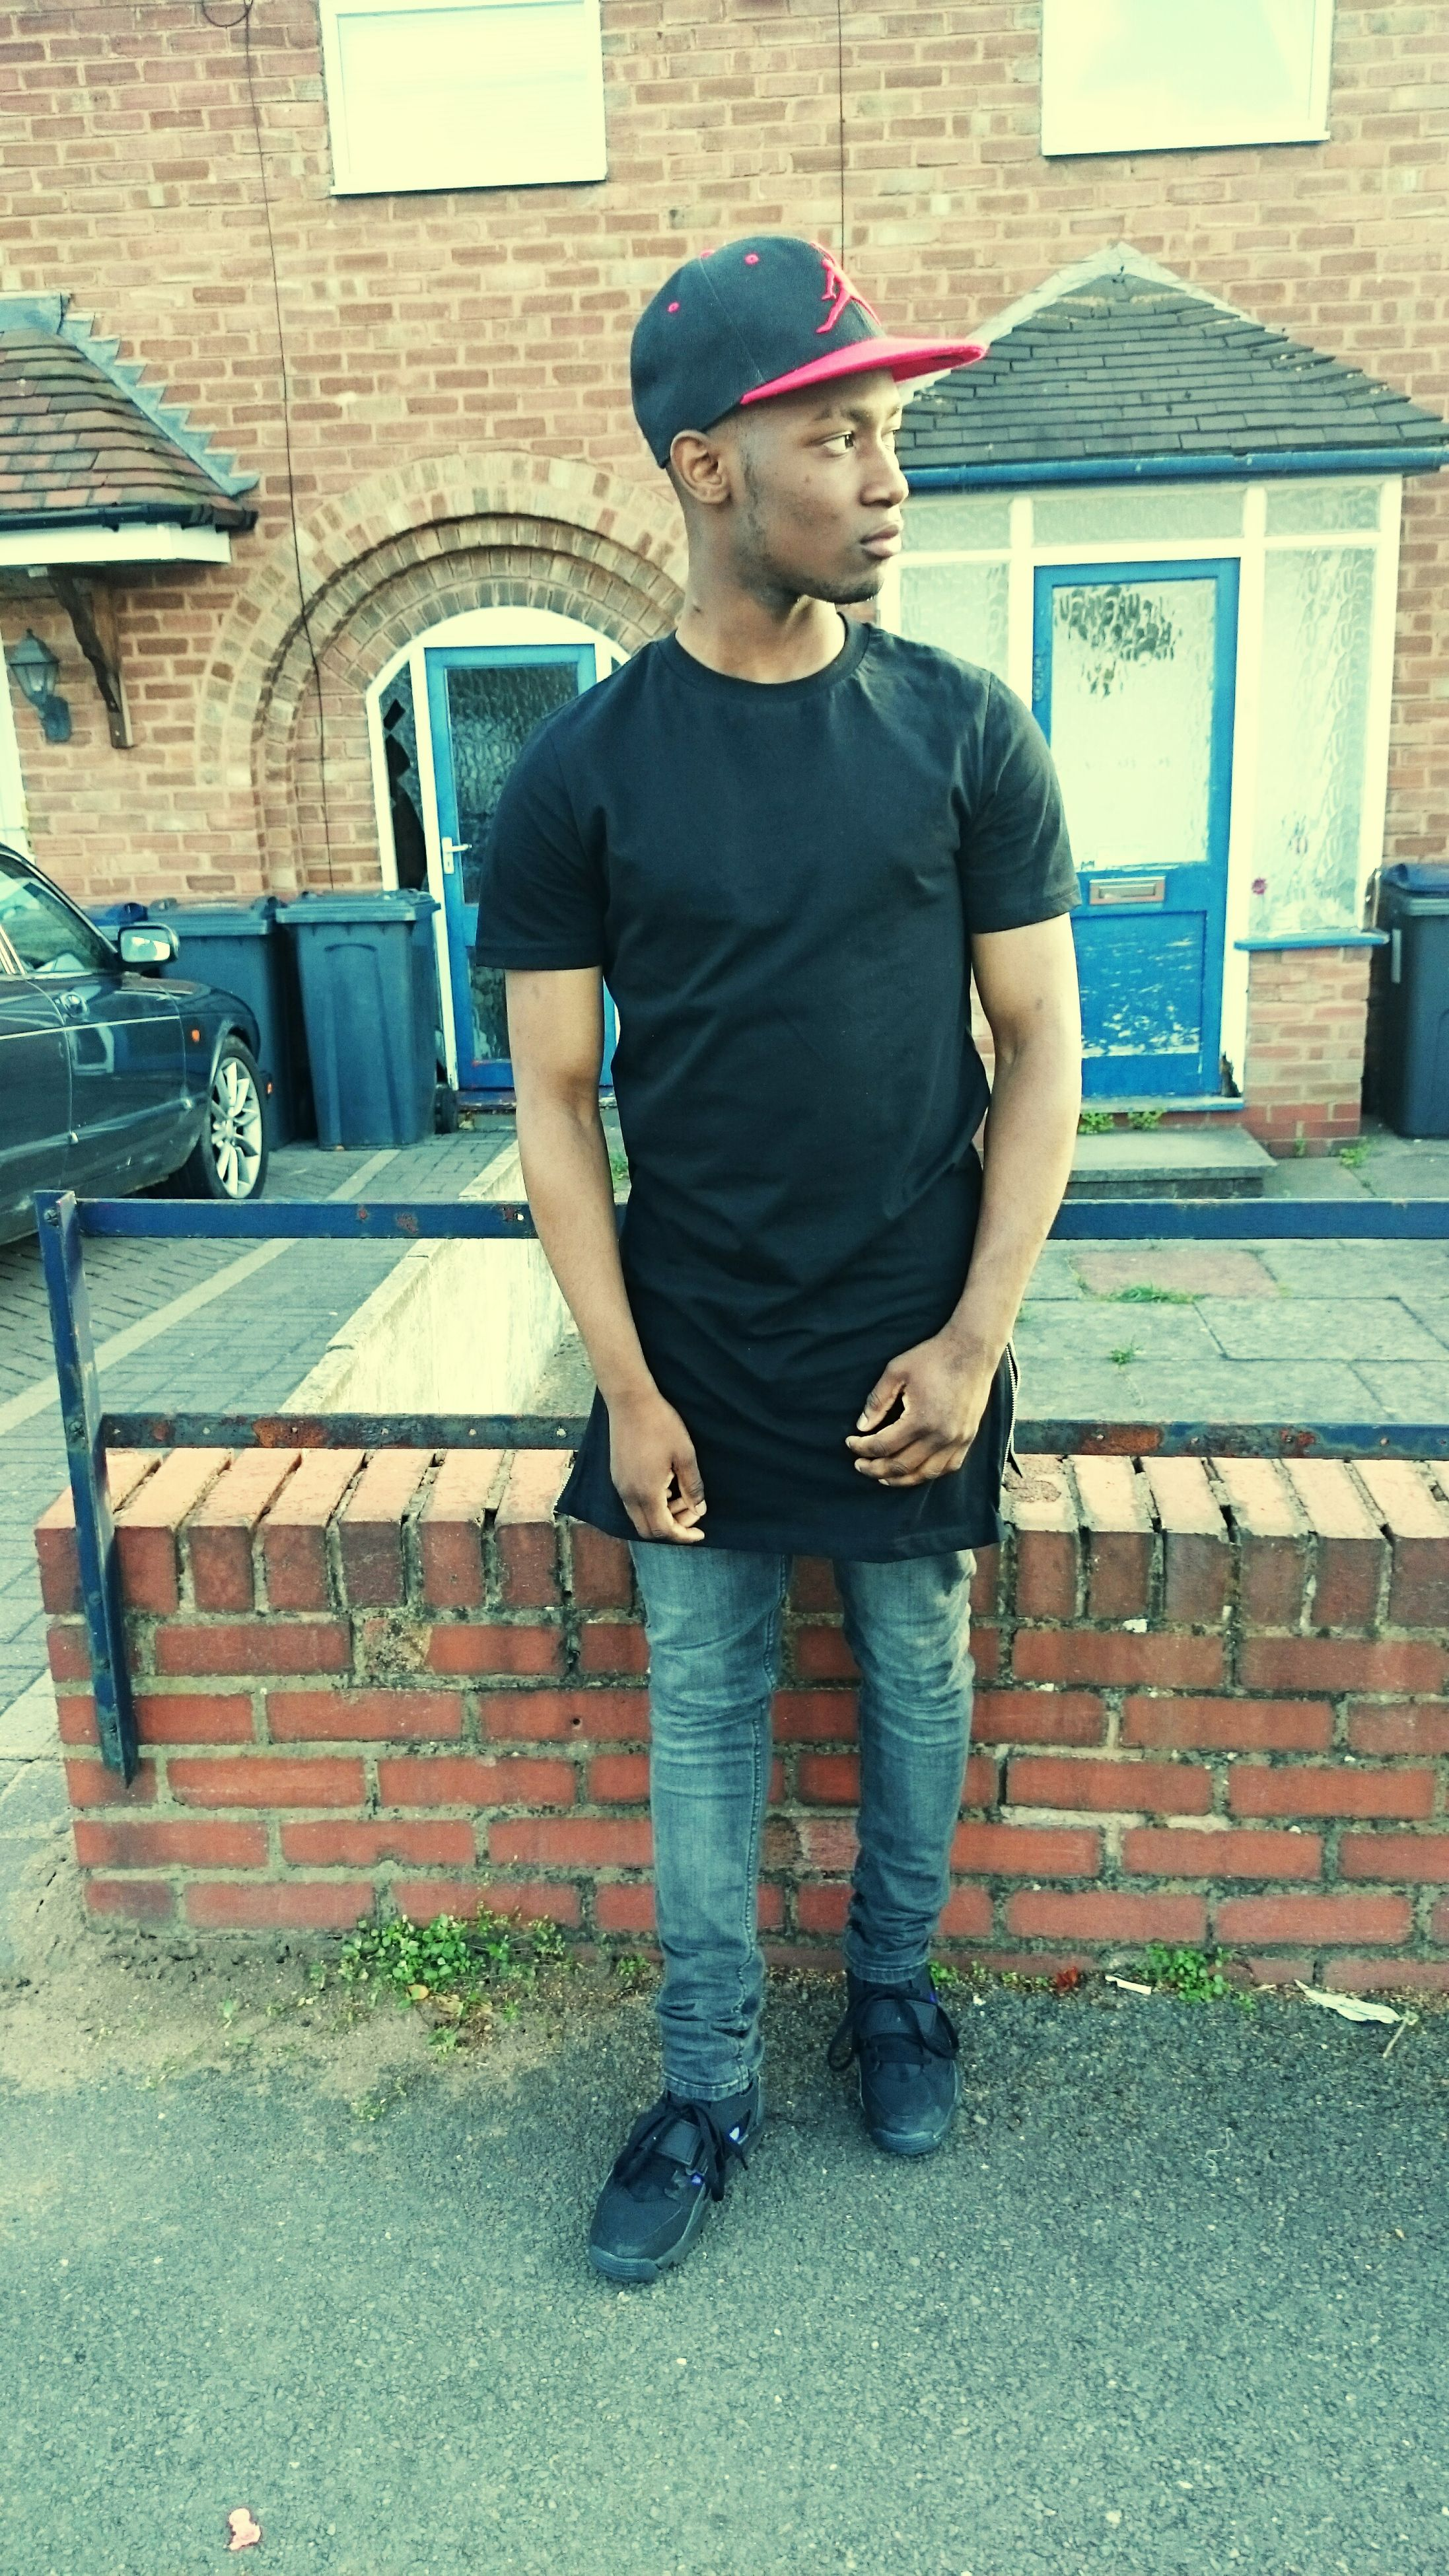 full length, building exterior, casual clothing, built structure, architecture, lifestyles, person, young adult, standing, leisure activity, front view, young men, side view, sunglasses, hands in pockets, three quarter length, house, holding